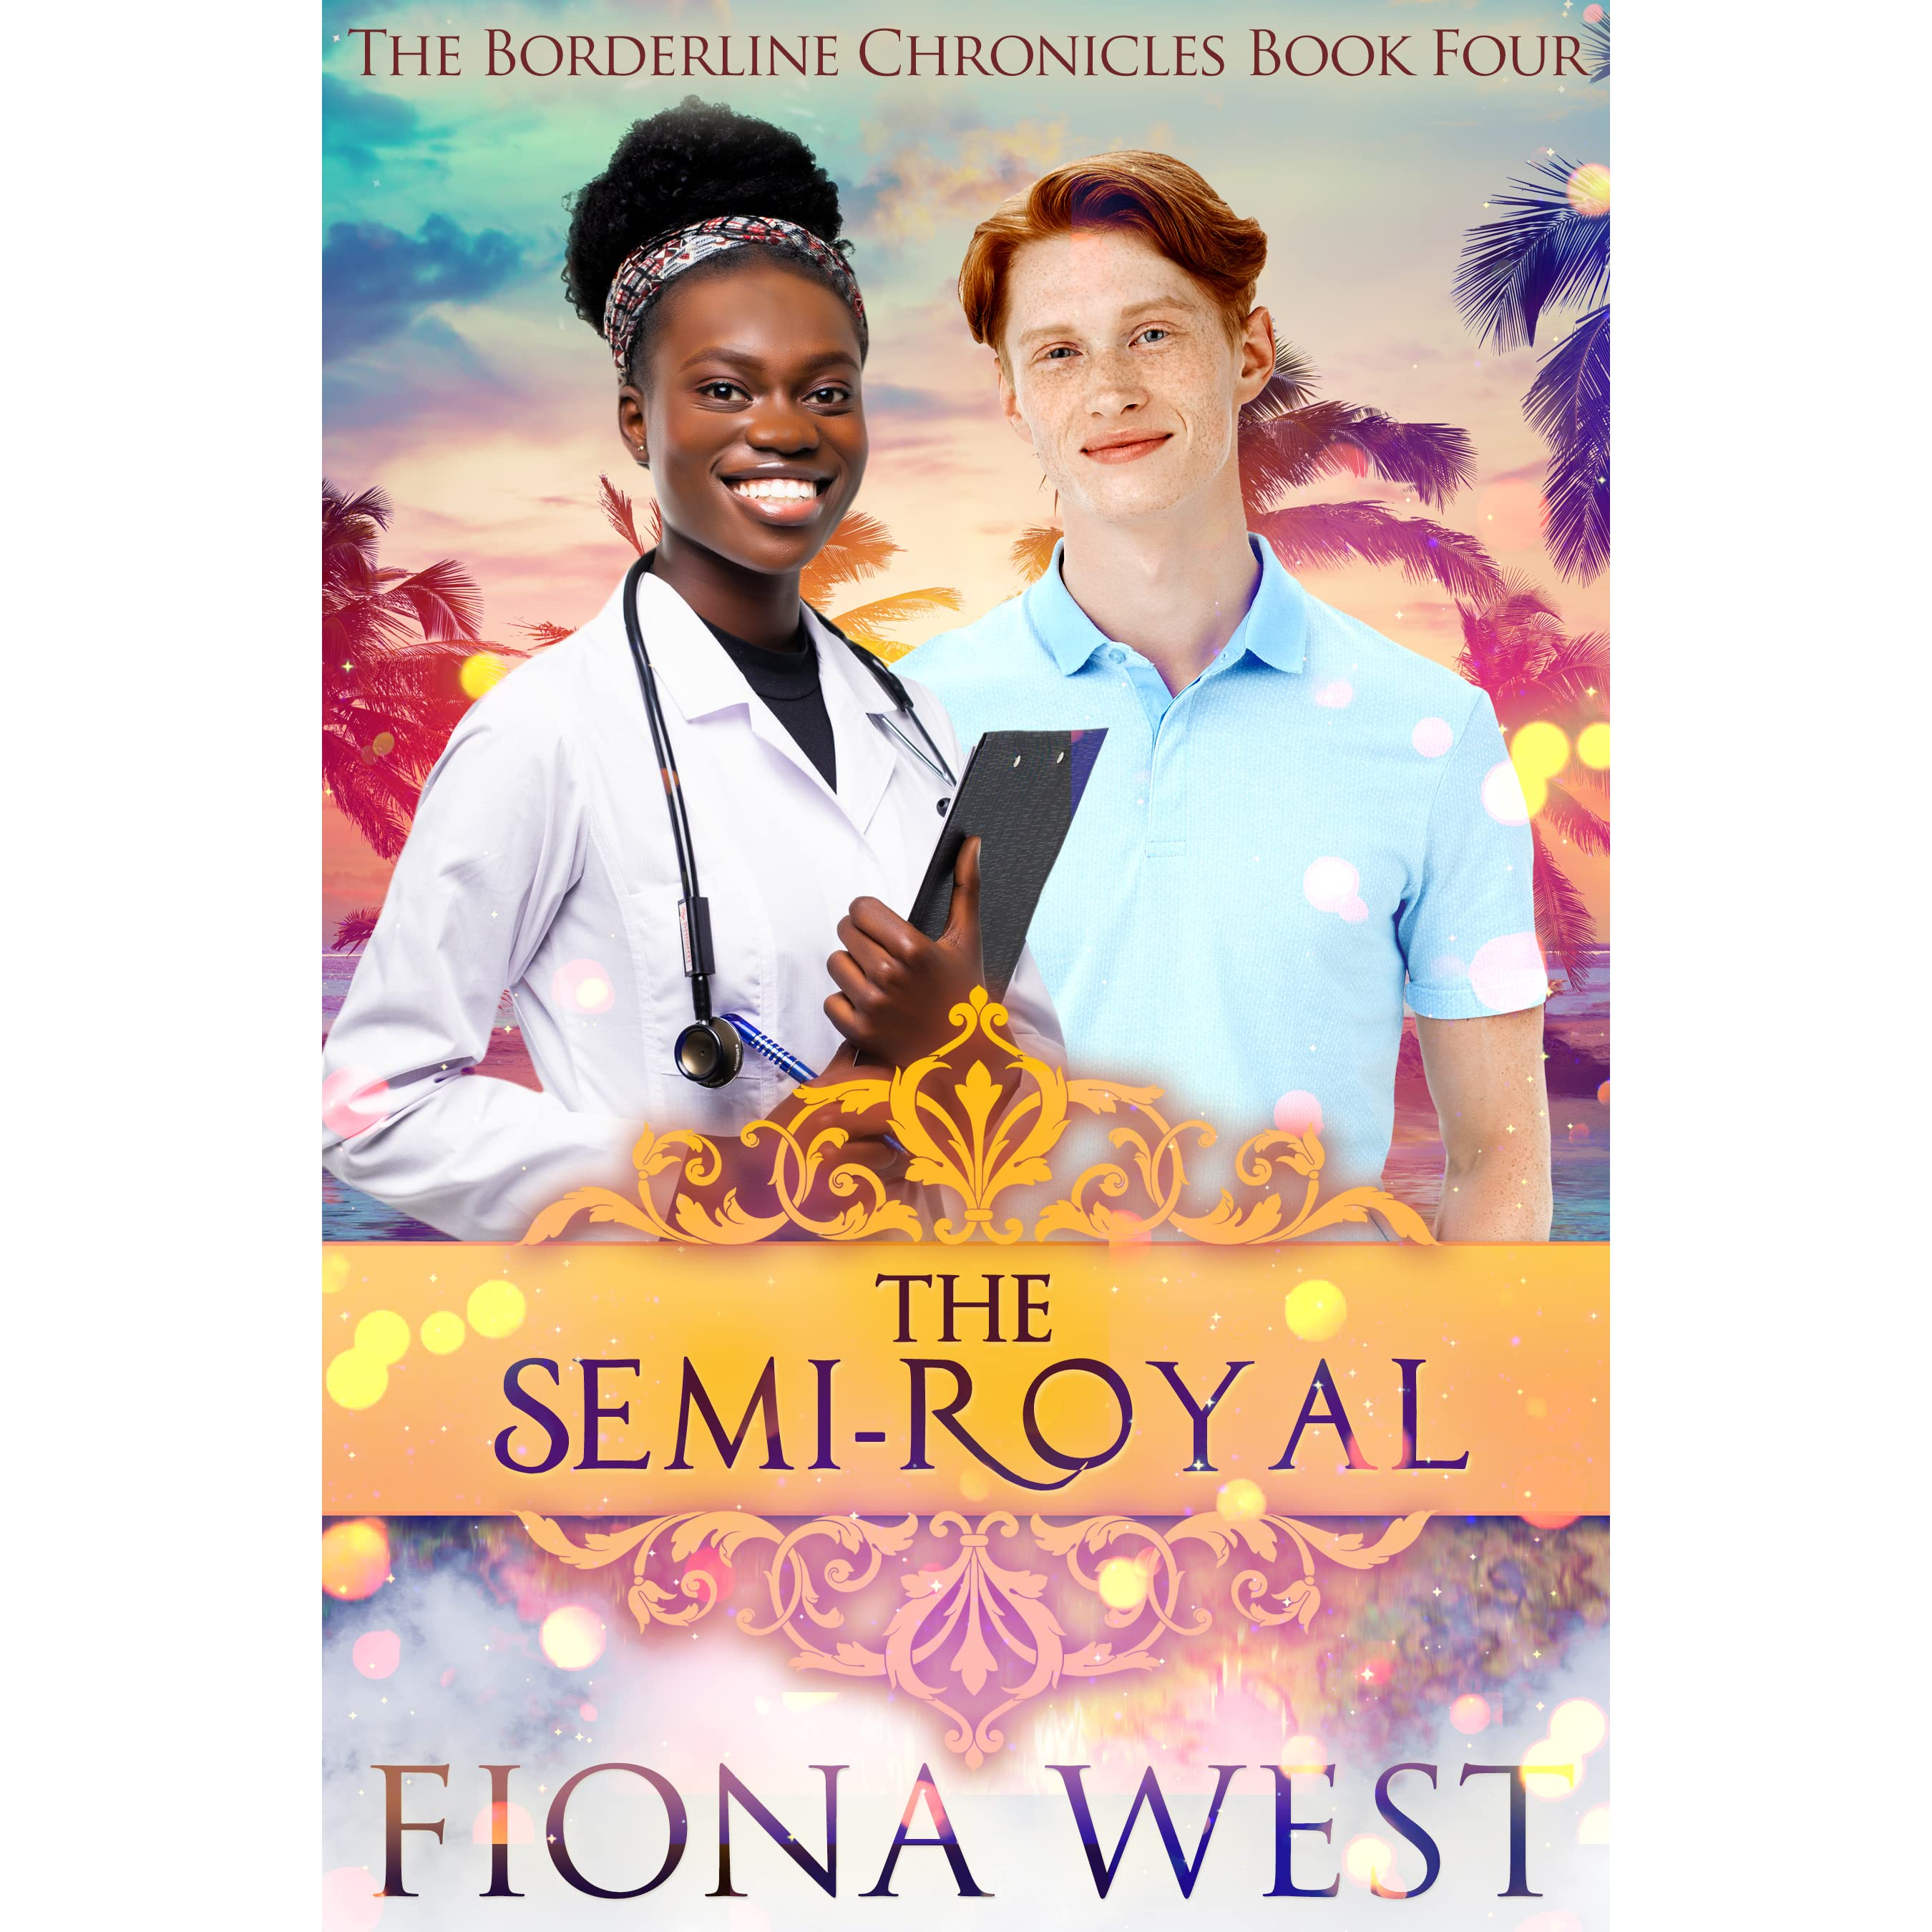 Image result for semi-royal by fiona west